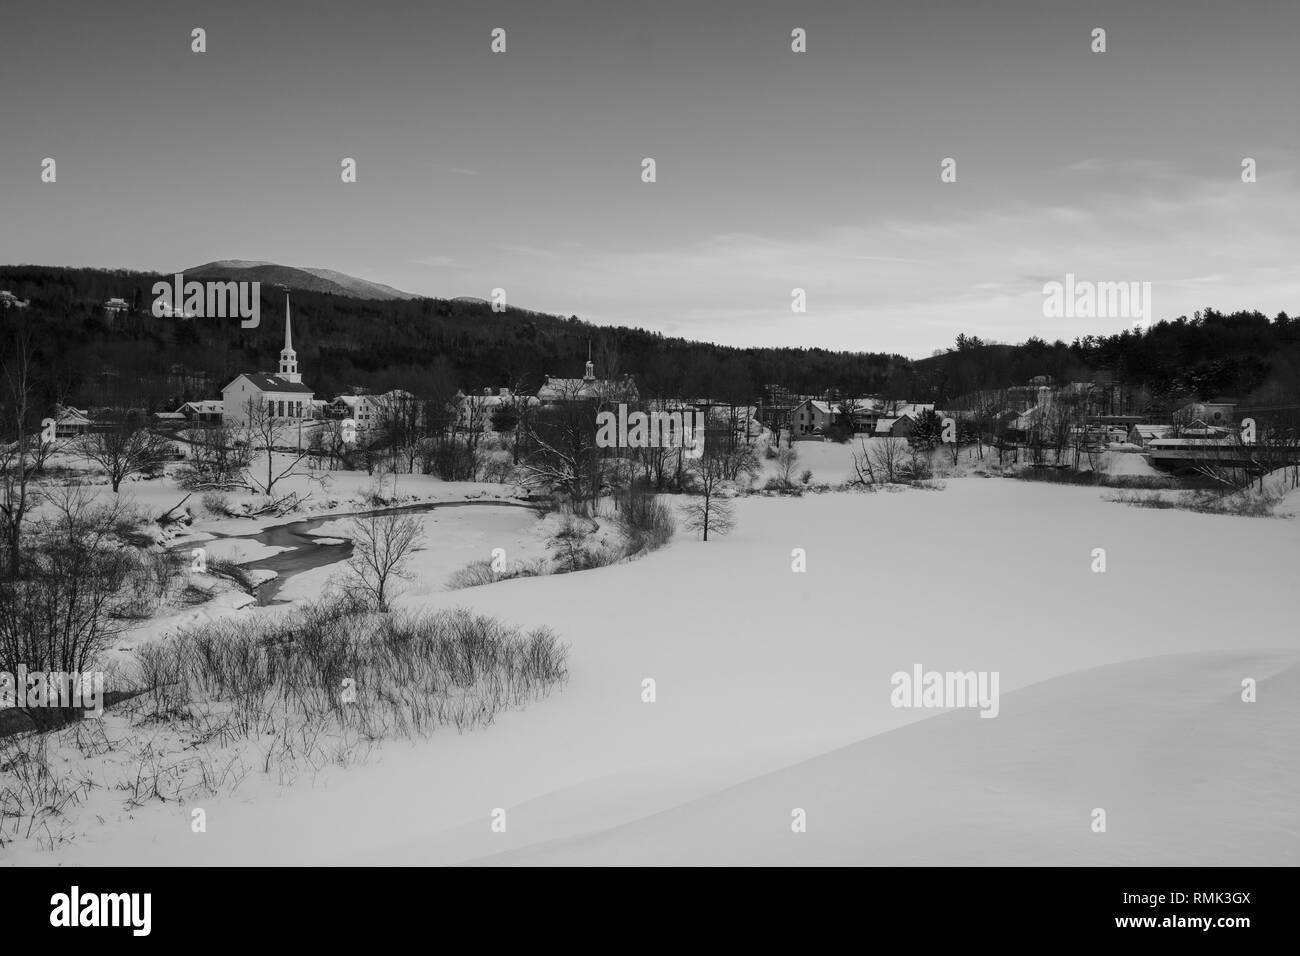 Wide angle of downtown stowe vermont stock image